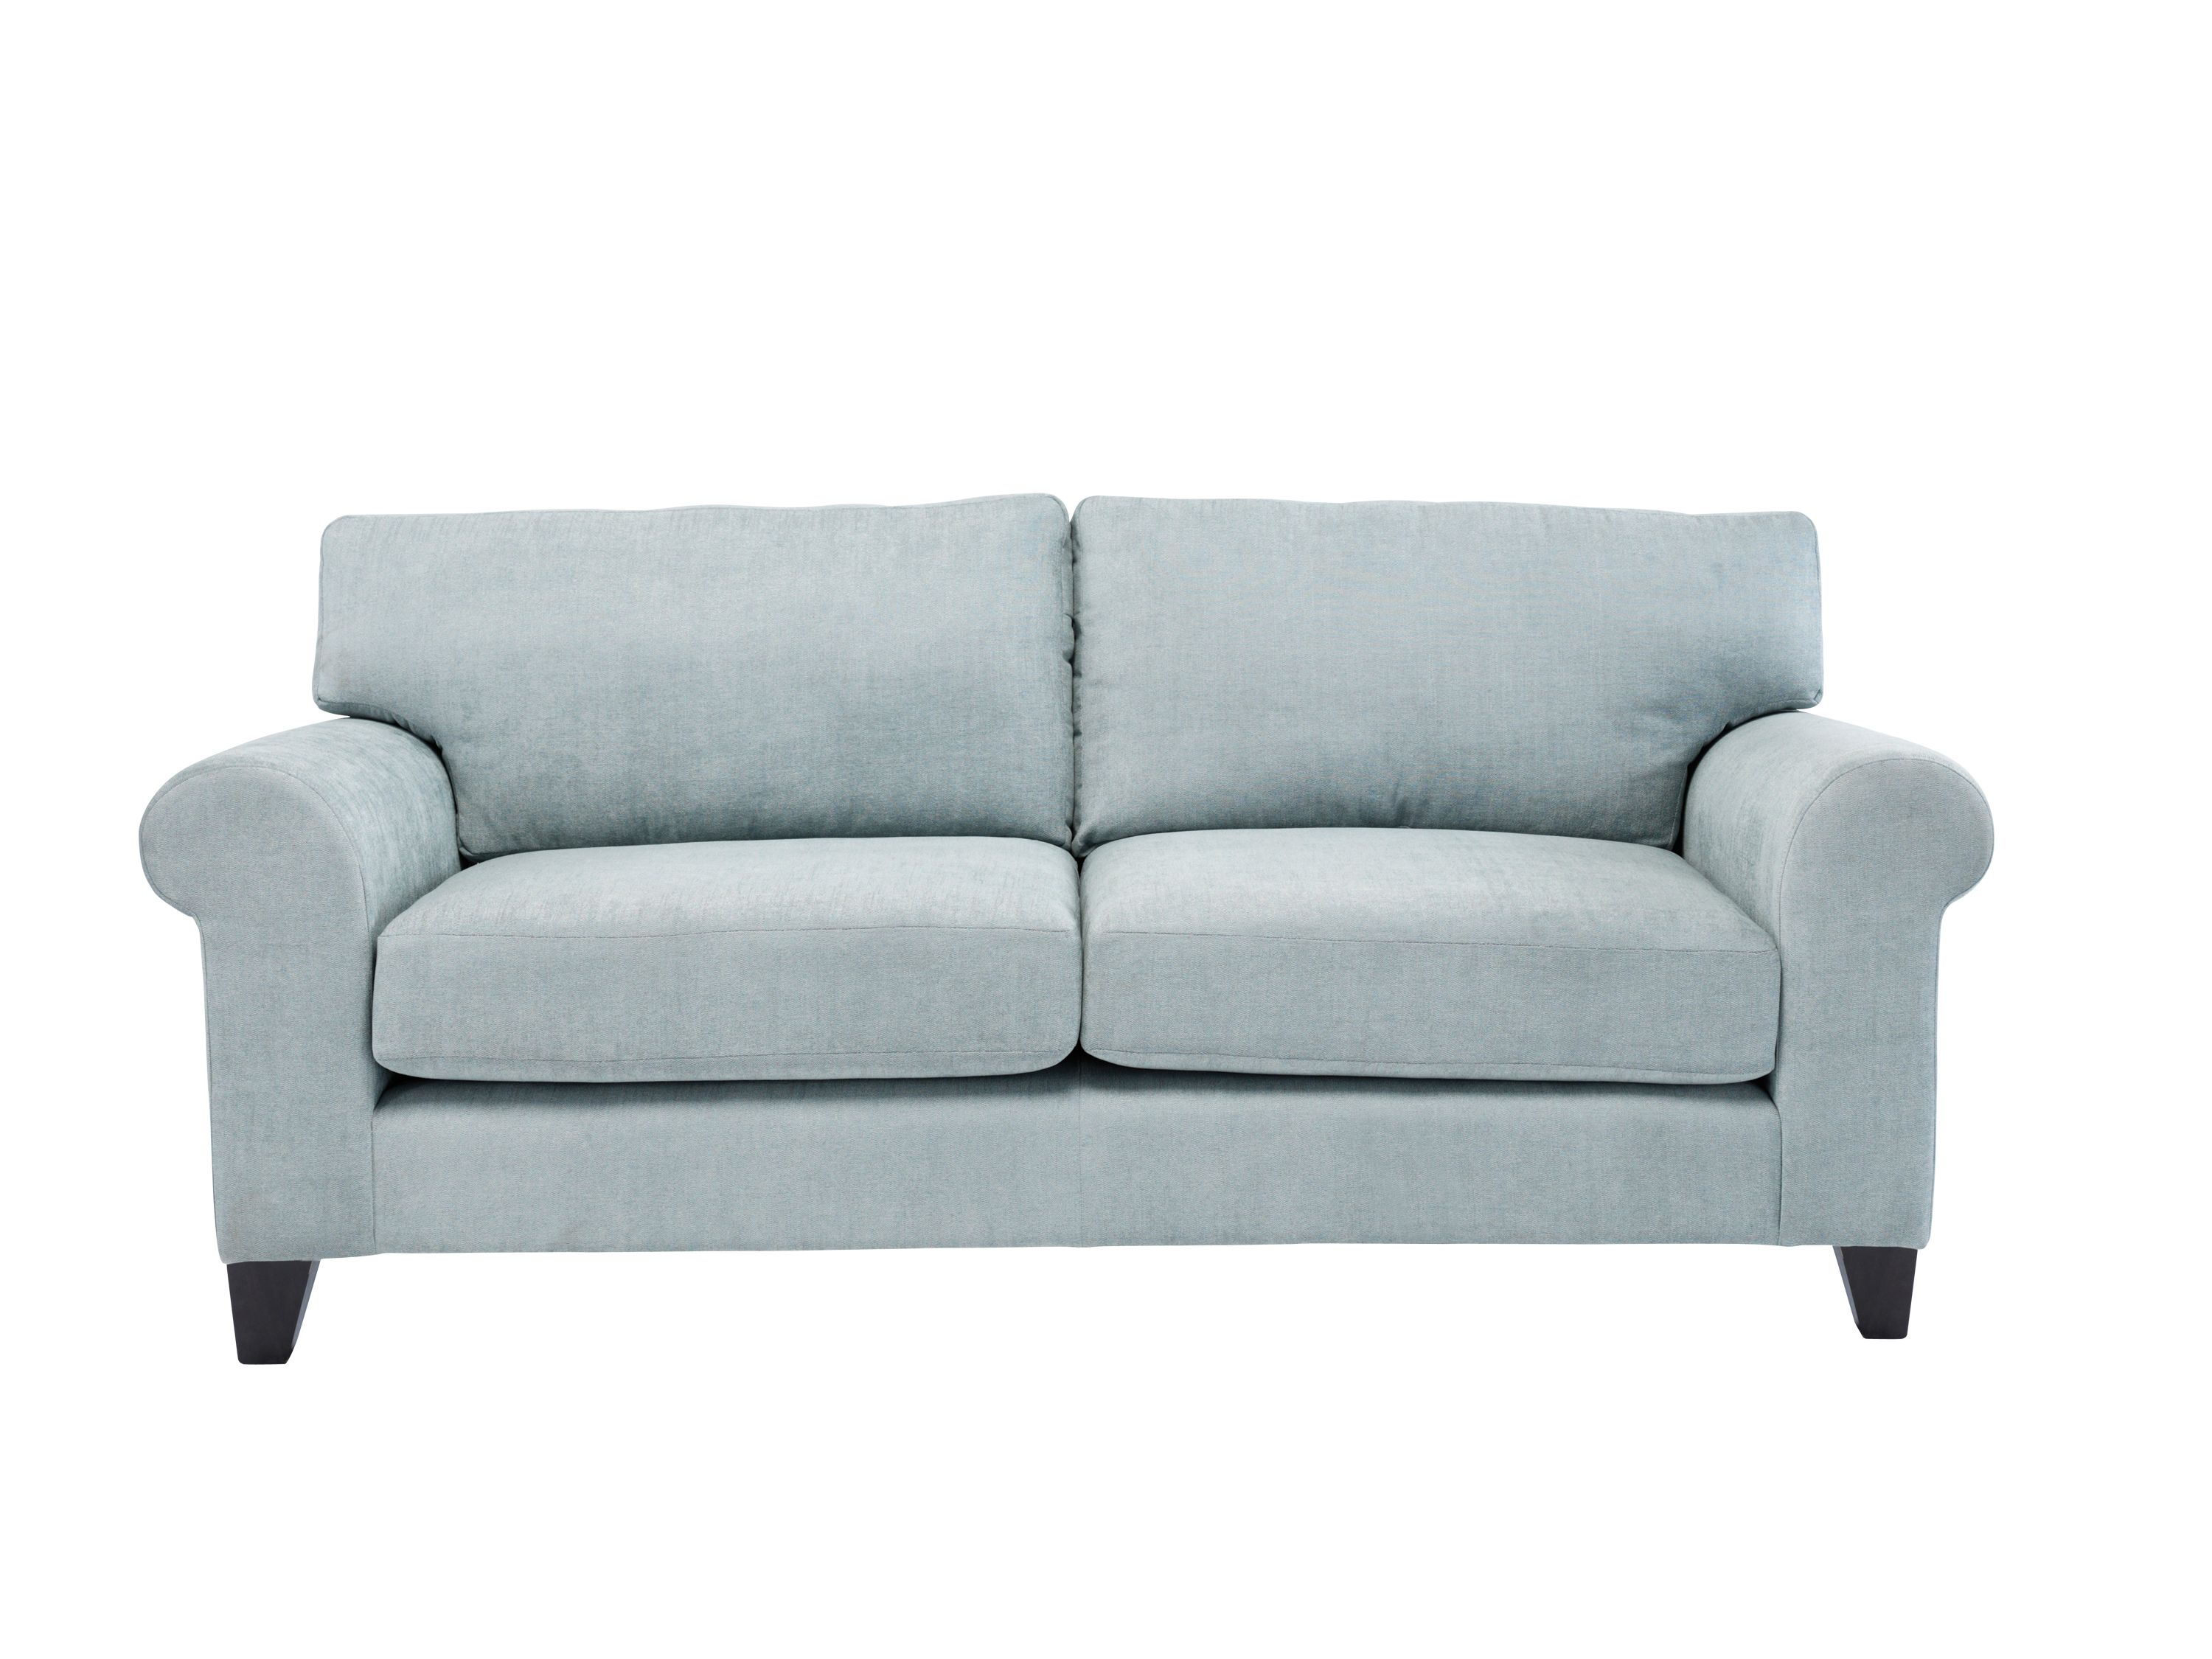 Seat Sofa Maywood Duck Egg